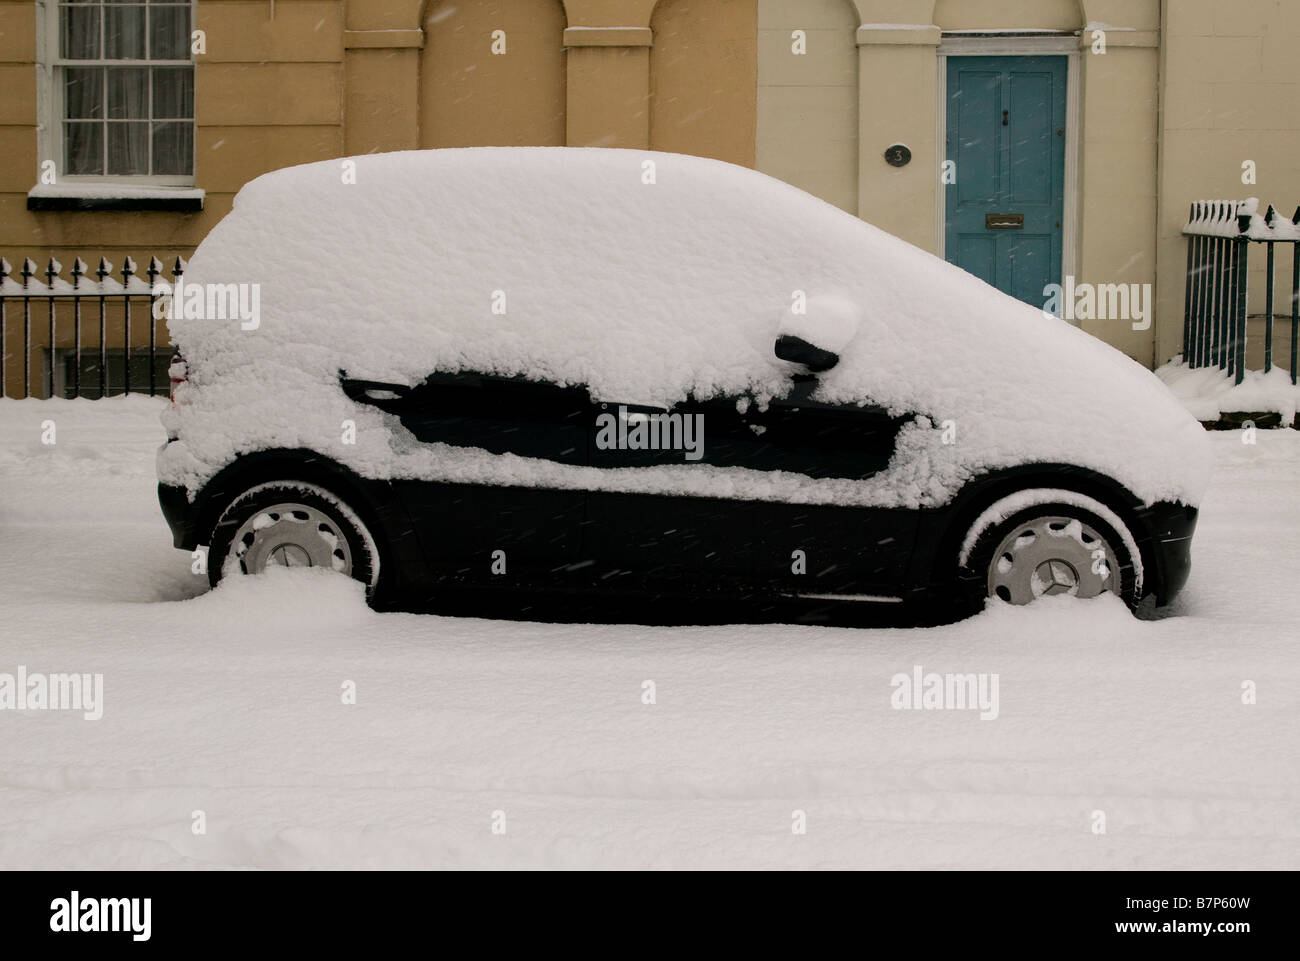 Snow covered car in London - Stock Image